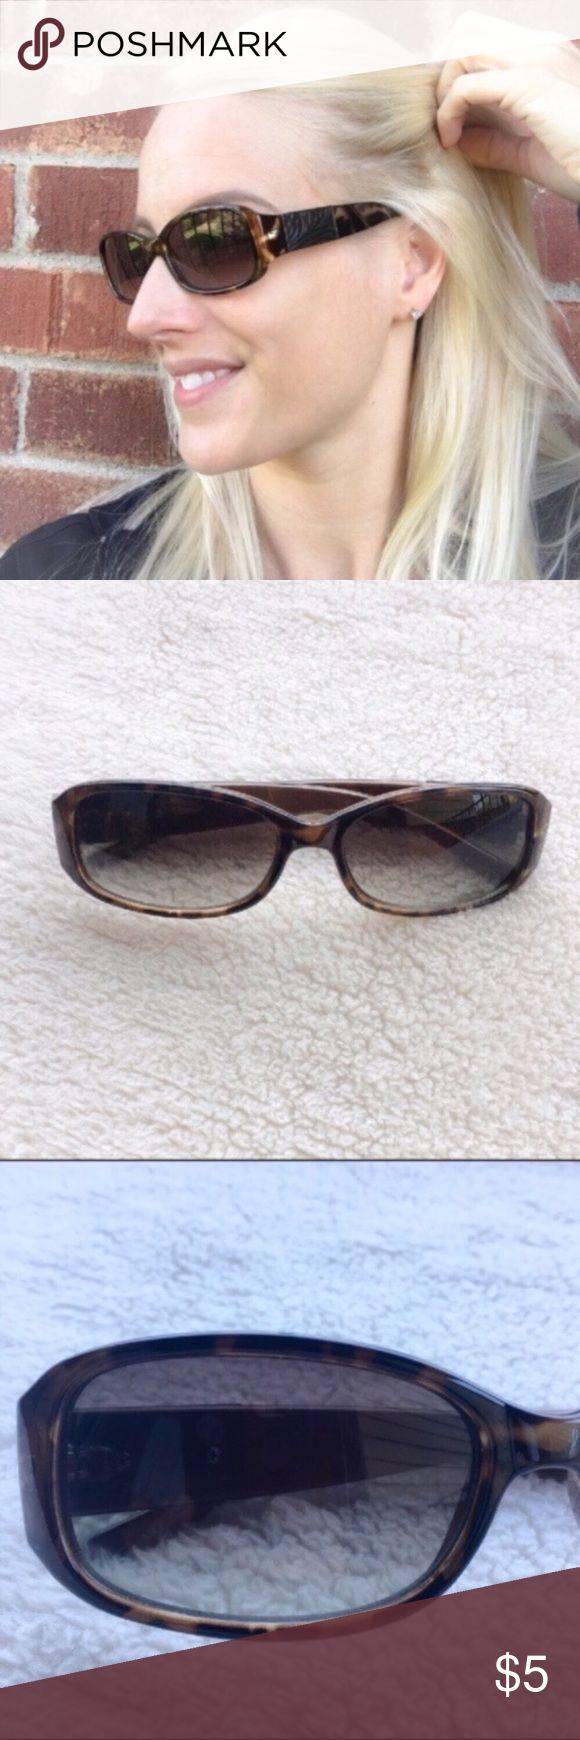 Brown Tortoise Shell Fashion Sunglasses No name brand brown tortoise shell sunglasses. No scratches to the lenses but no case so no case with purchase. I'm only looking to sell at this time so sorry but no trades. My listing price is firm. Accessories Sunglasses